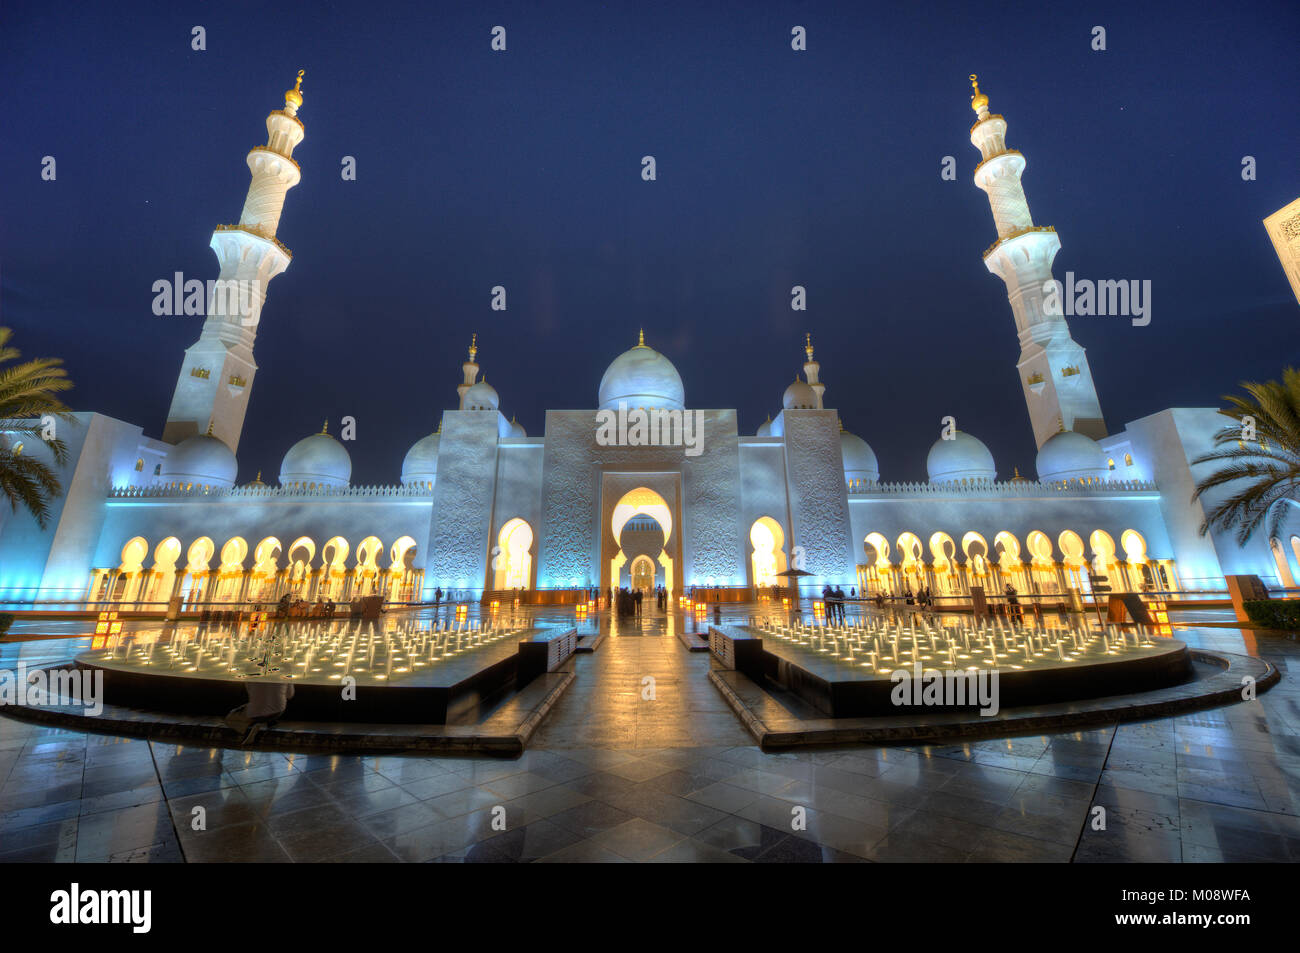 ABU DHABI, UNITED ARAB EMIRATES - DEC 31, 2017: Exterior of the Sheikh Zayed Mosque in Abu Dhabi in twilight. It - Stock Image